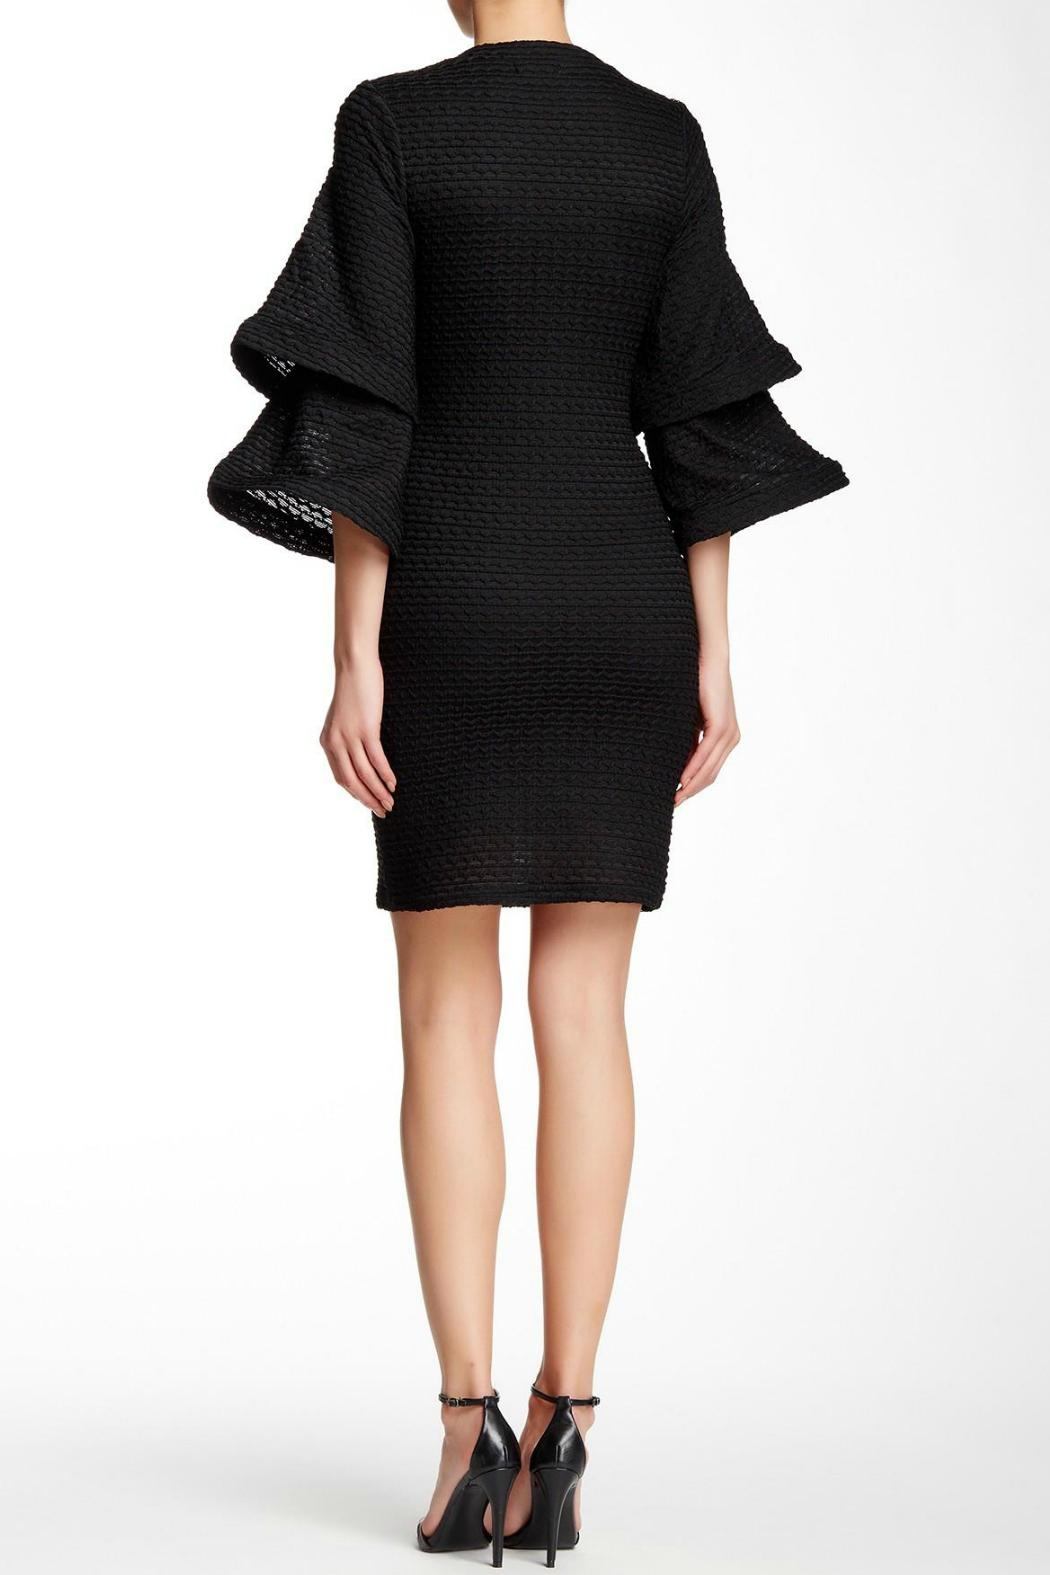 Gracia Crease Bell-Sleeved Dress - Front Full Image